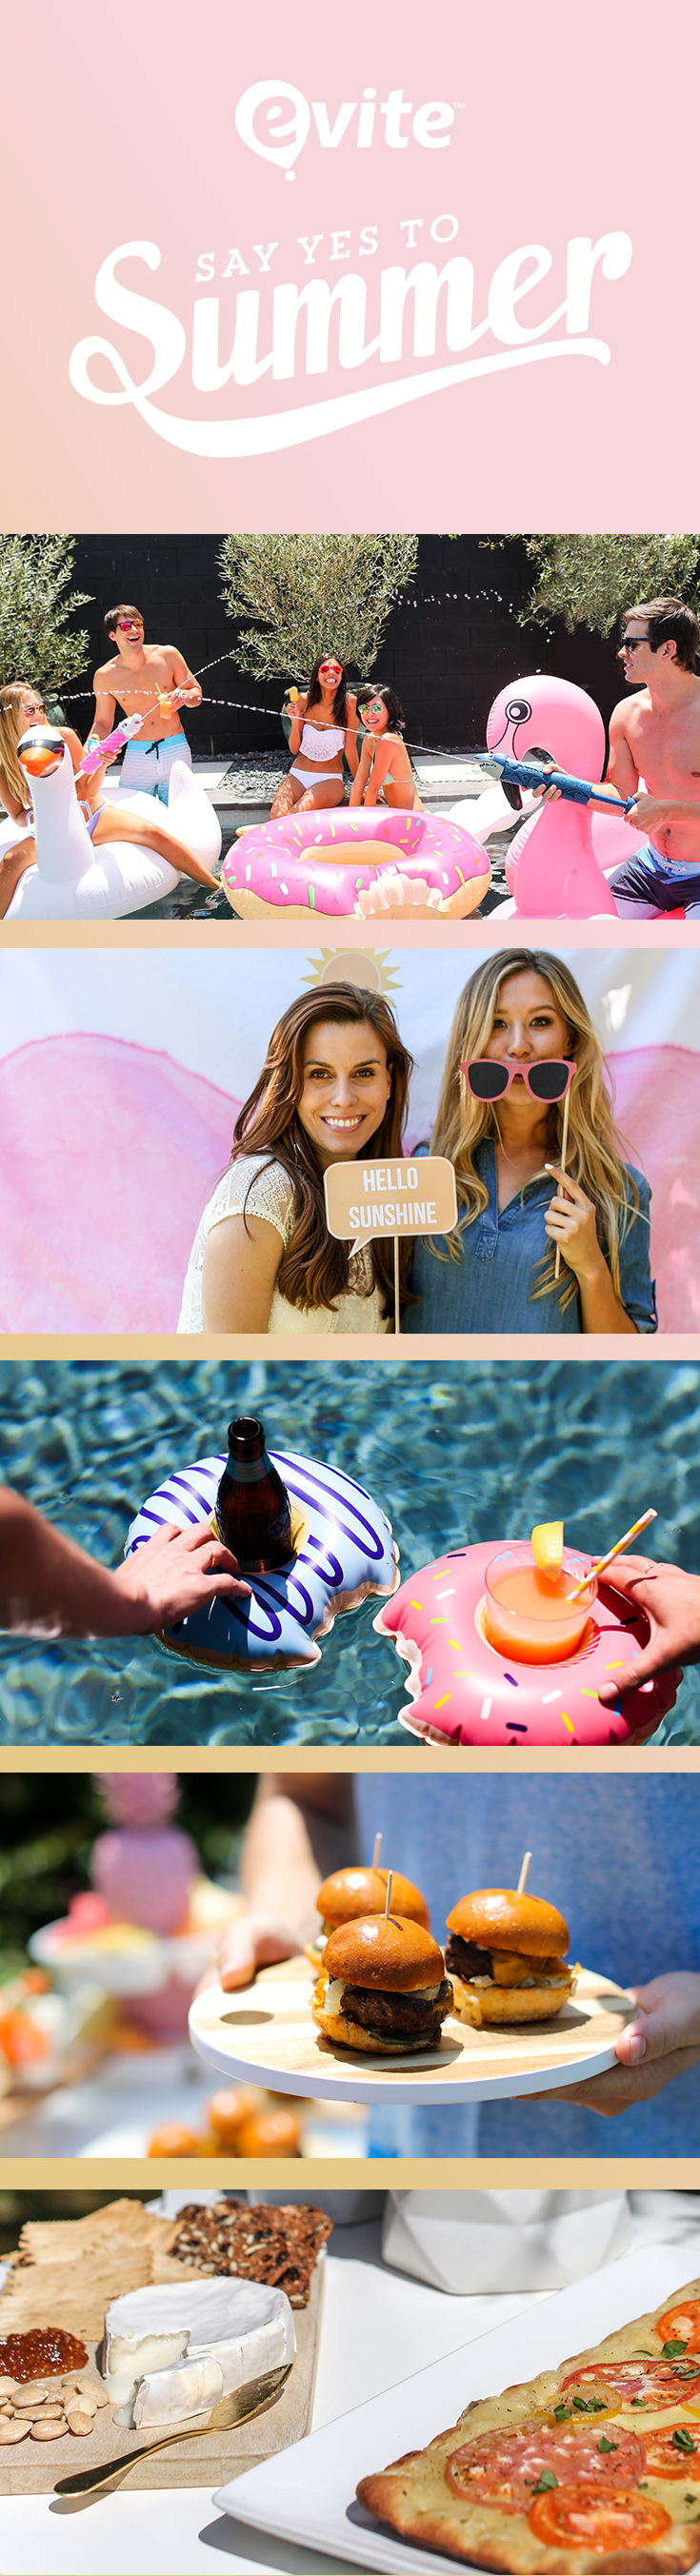 If you haven't already, it is time to get out the calendar and plan some fun activities to maximize your summer time. Here are 5 ways to say yes to summer! #BeThere #Evite #AD